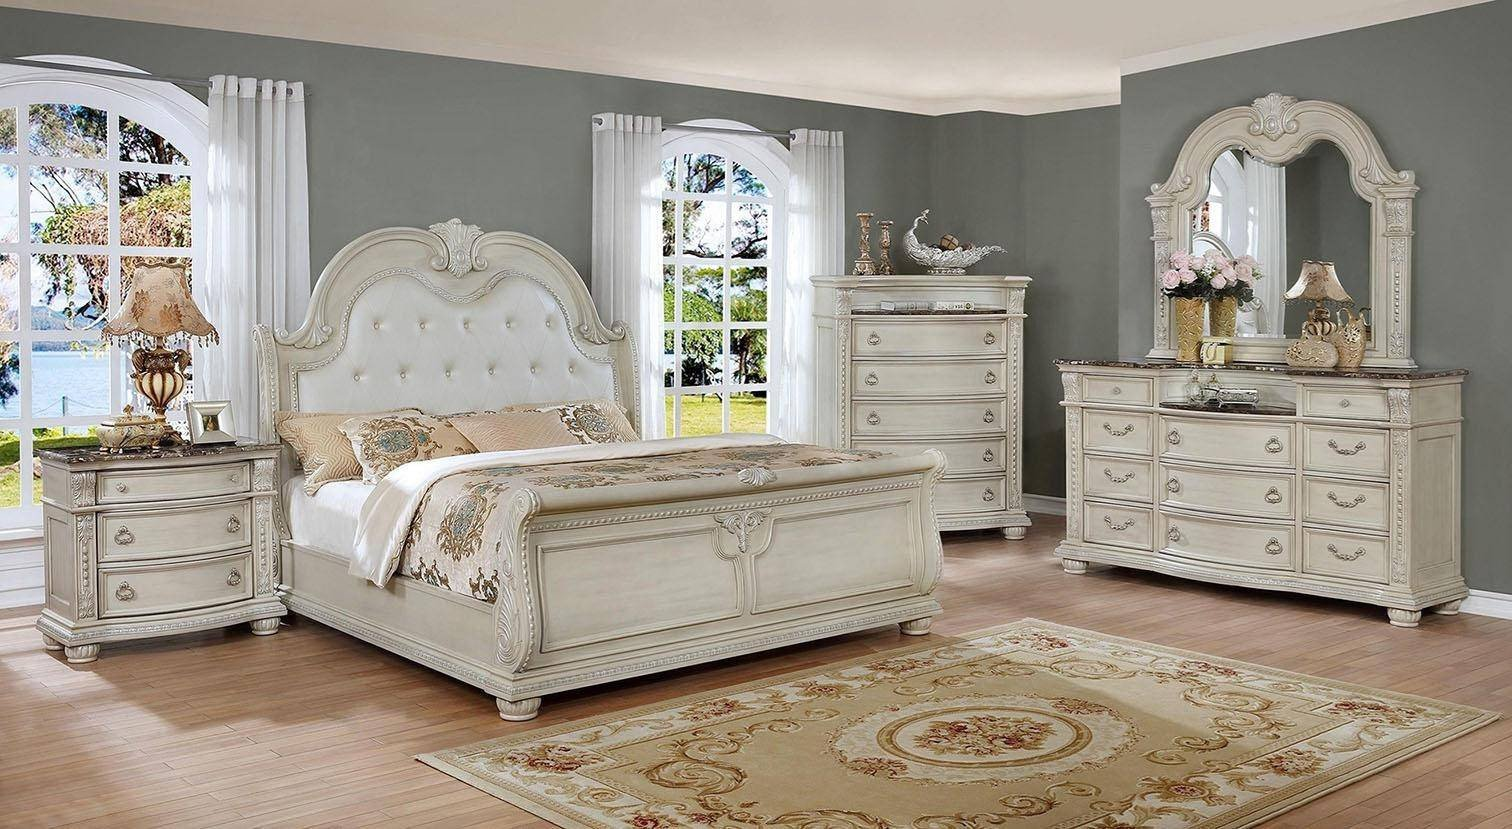 White and Gold Bedroom Set Lovely Crown Mark B1630 Stanley Antique White solid Wood Queen